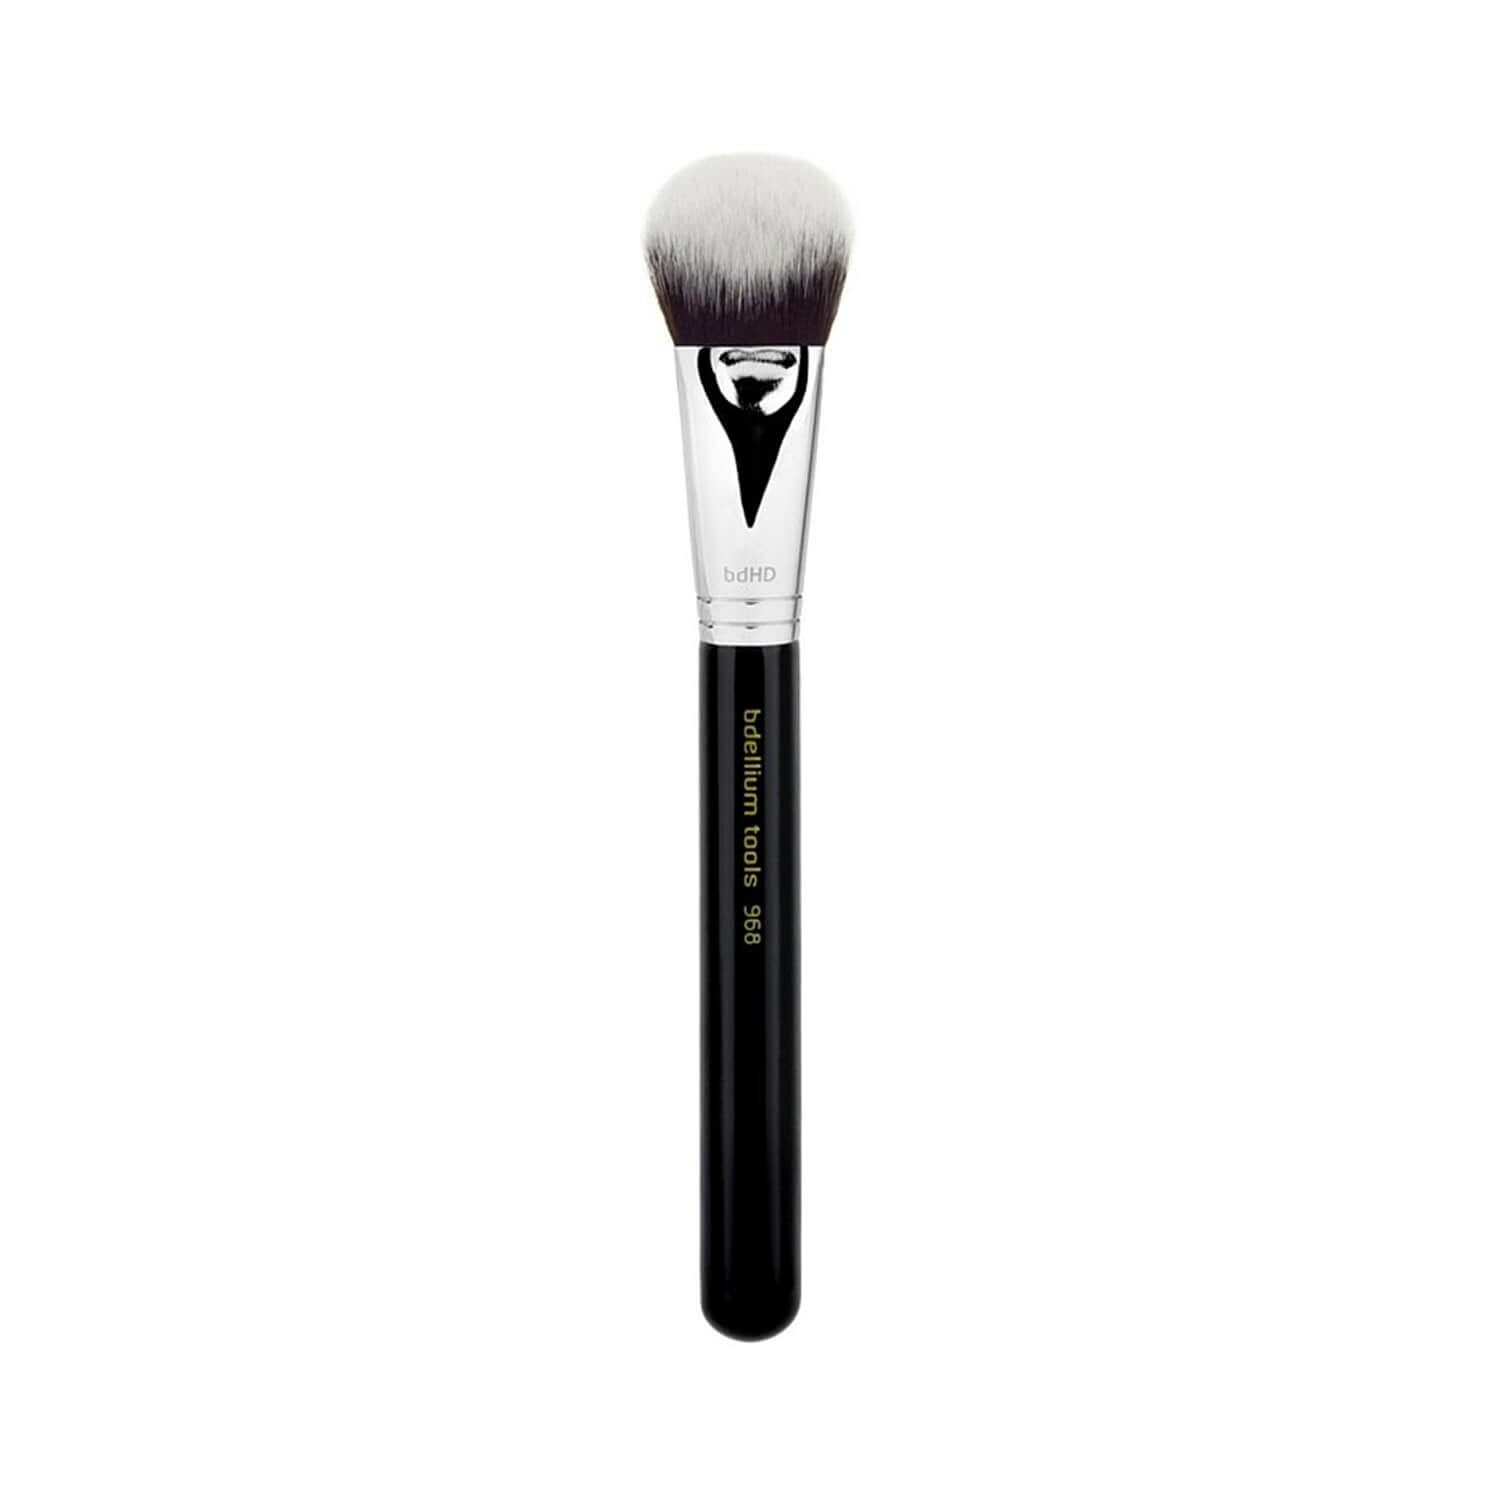 BDellium Tools Maestro Line 968 BDHD Phase II Small Foundation Contour Brush Black